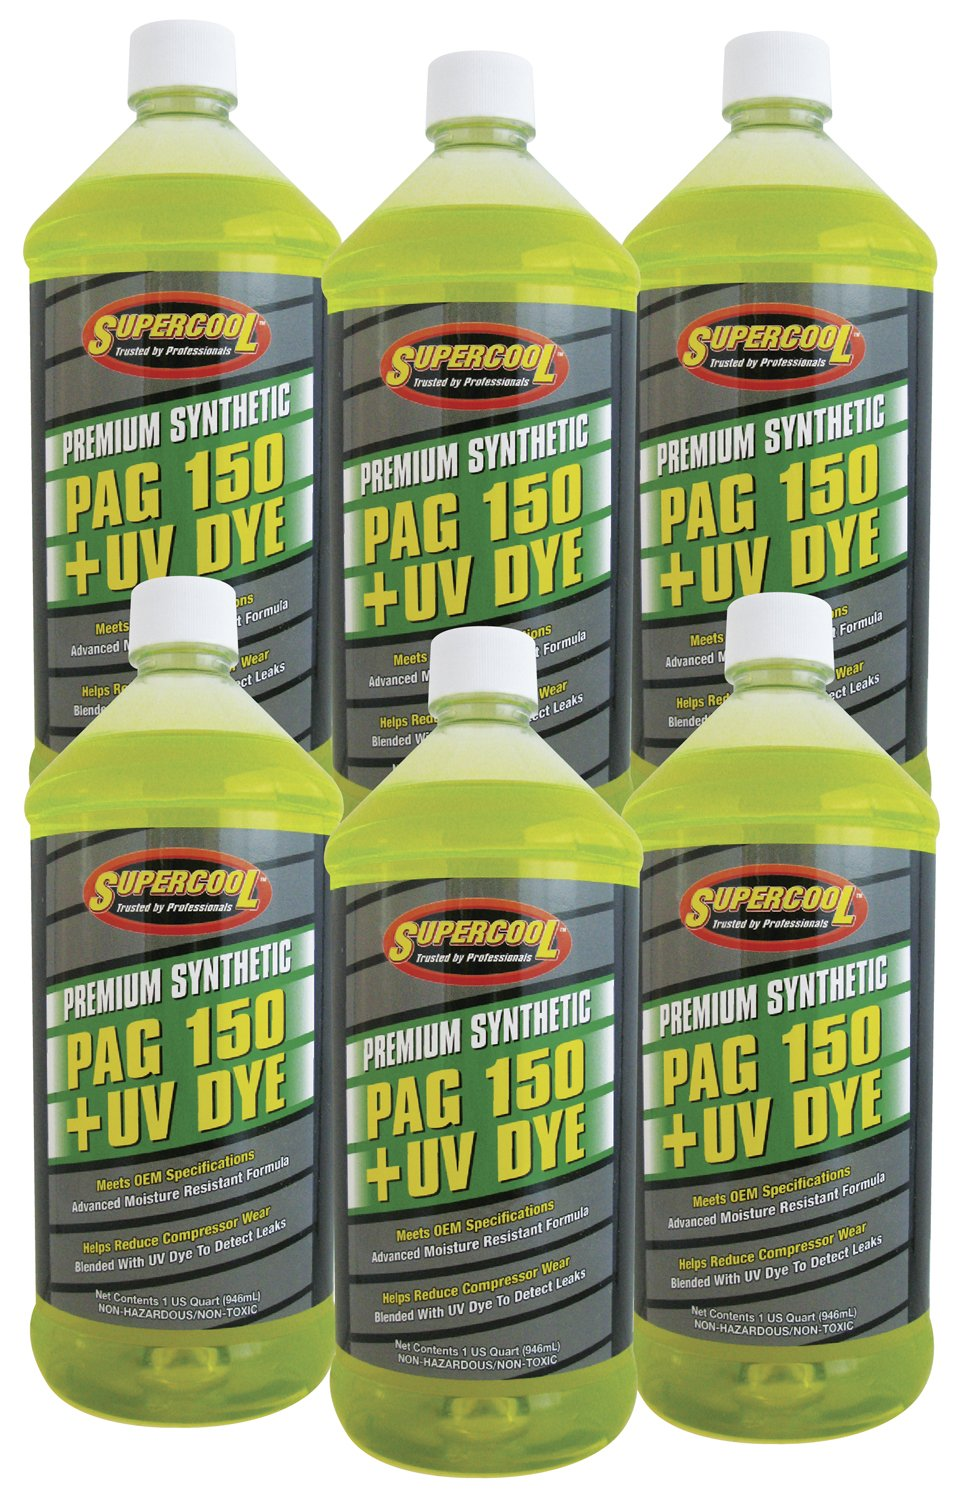 TSI Supercool P150-32D-6CP 150 PAG Viscosity Oil Plus U/V Dye, 32 oz, 6 Pack by TSI Supercool